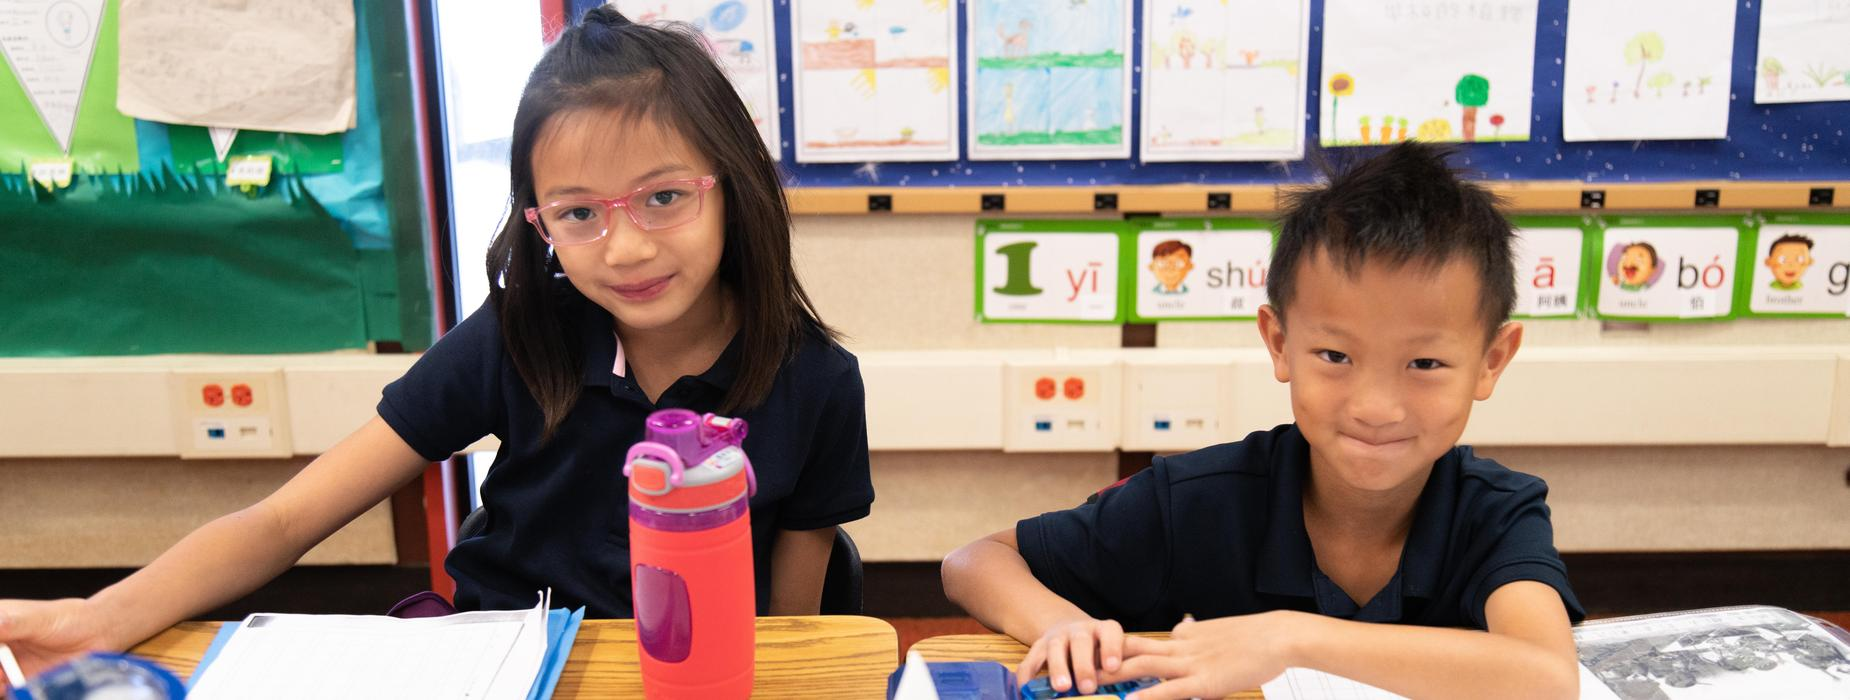 Students in the Dual Immersion Program at Marguerita School